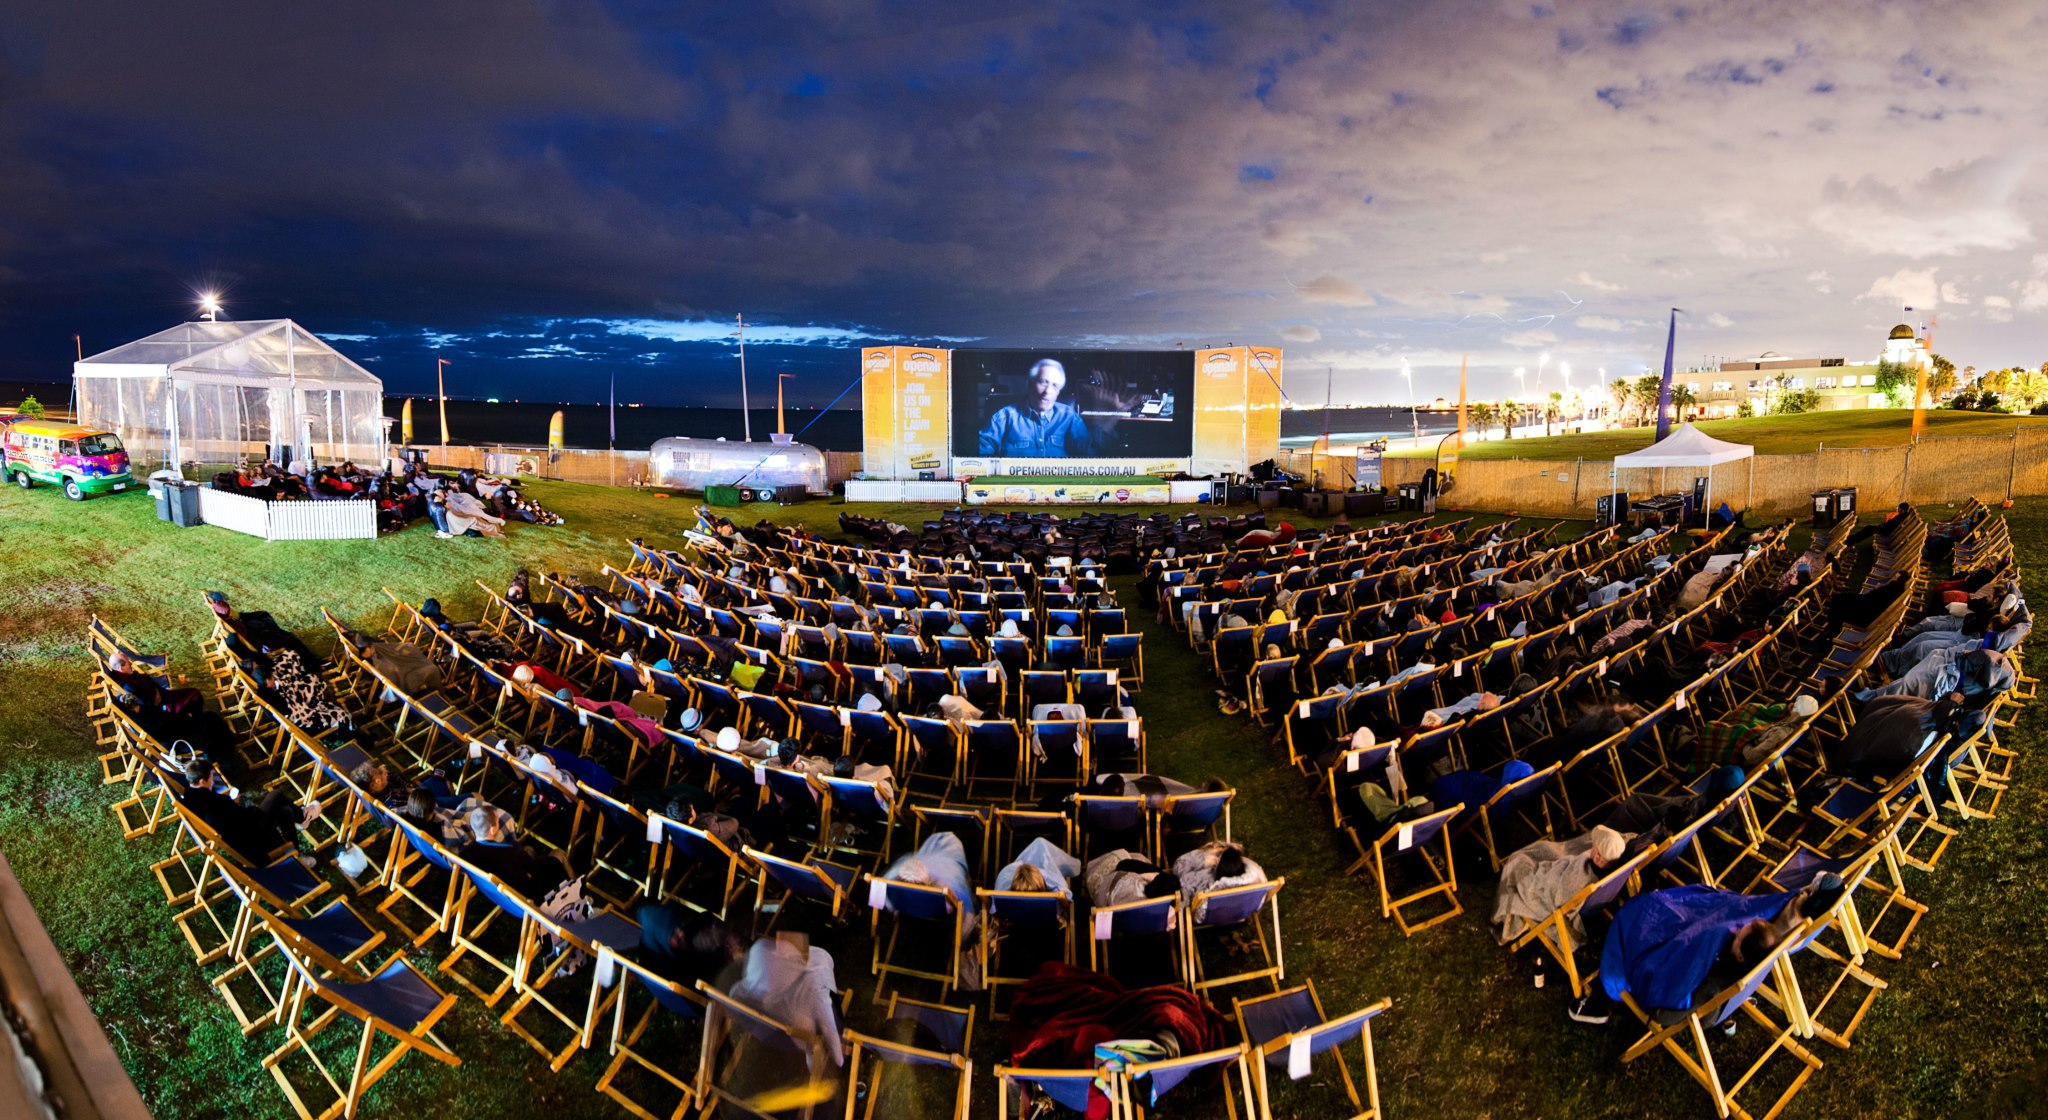 Open air cinemas with free ice cream by Ben&Jerrys